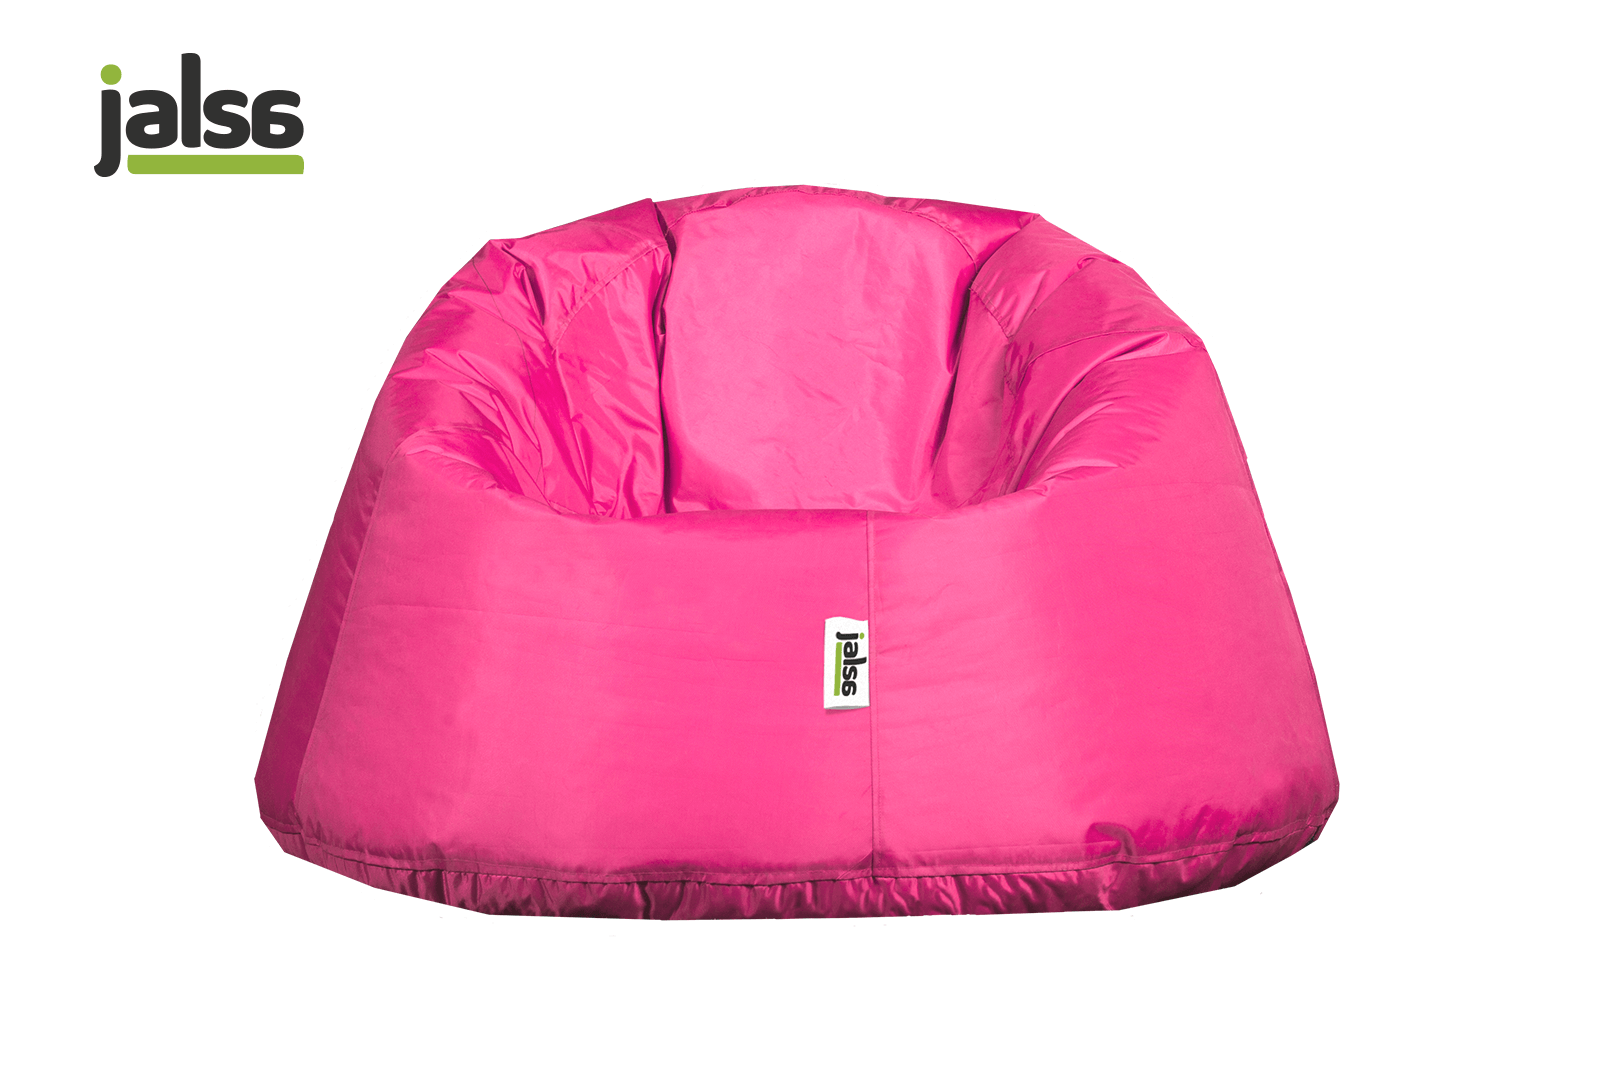 jalsa bag large beitzone buff chair bean product pink